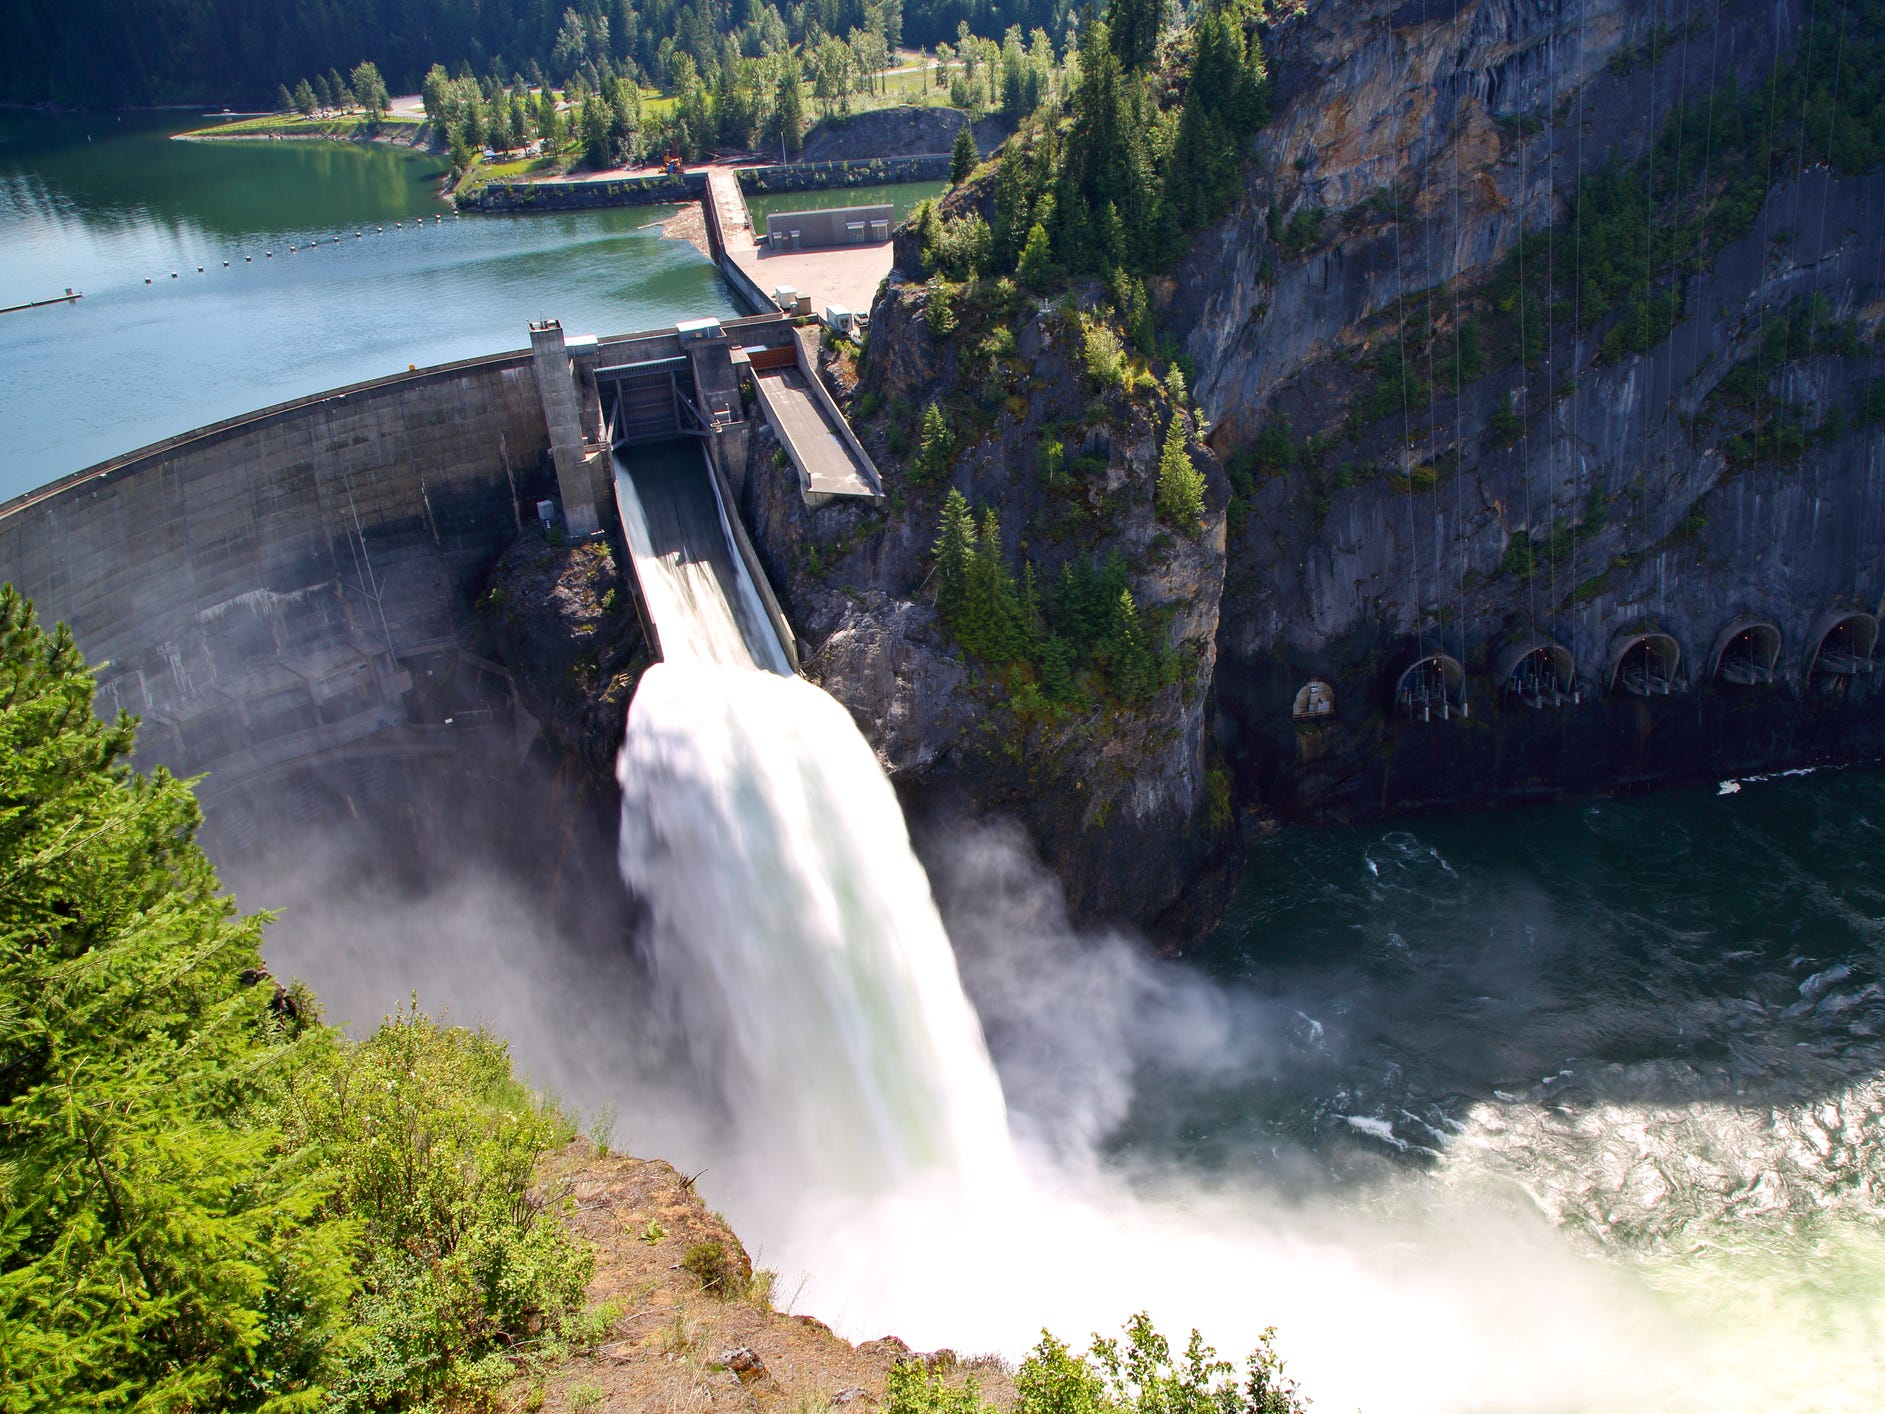 Boundary Dam in Washington.